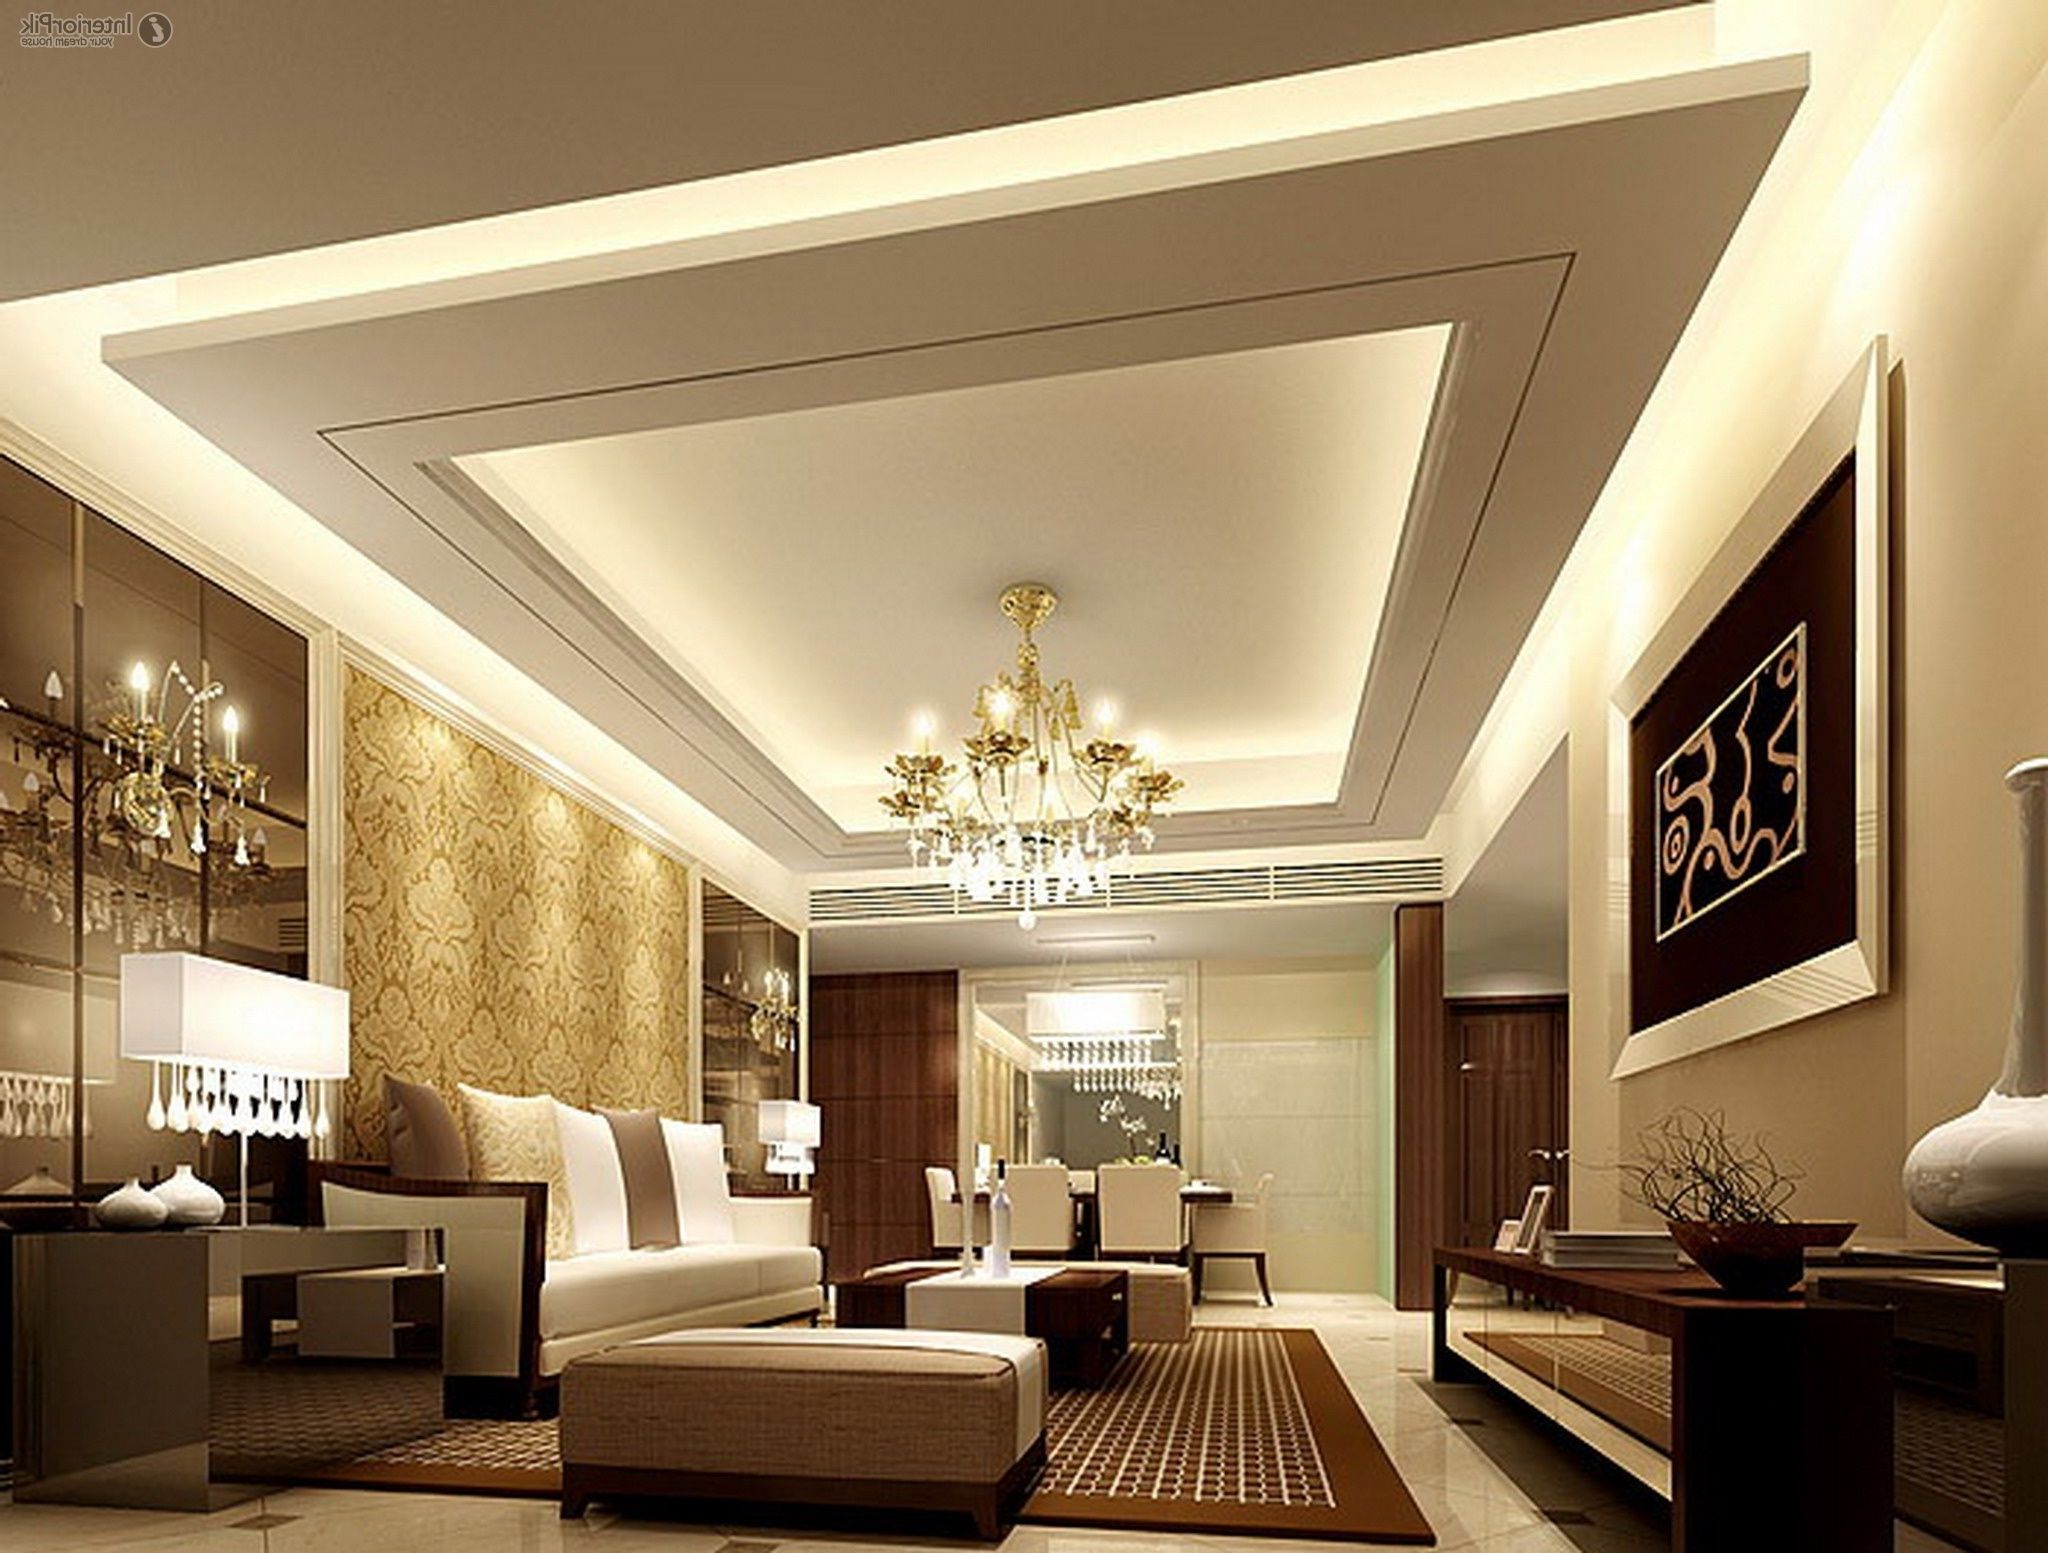 best 25+ gypsum ceiling ideas on pinterest | false ceiling design